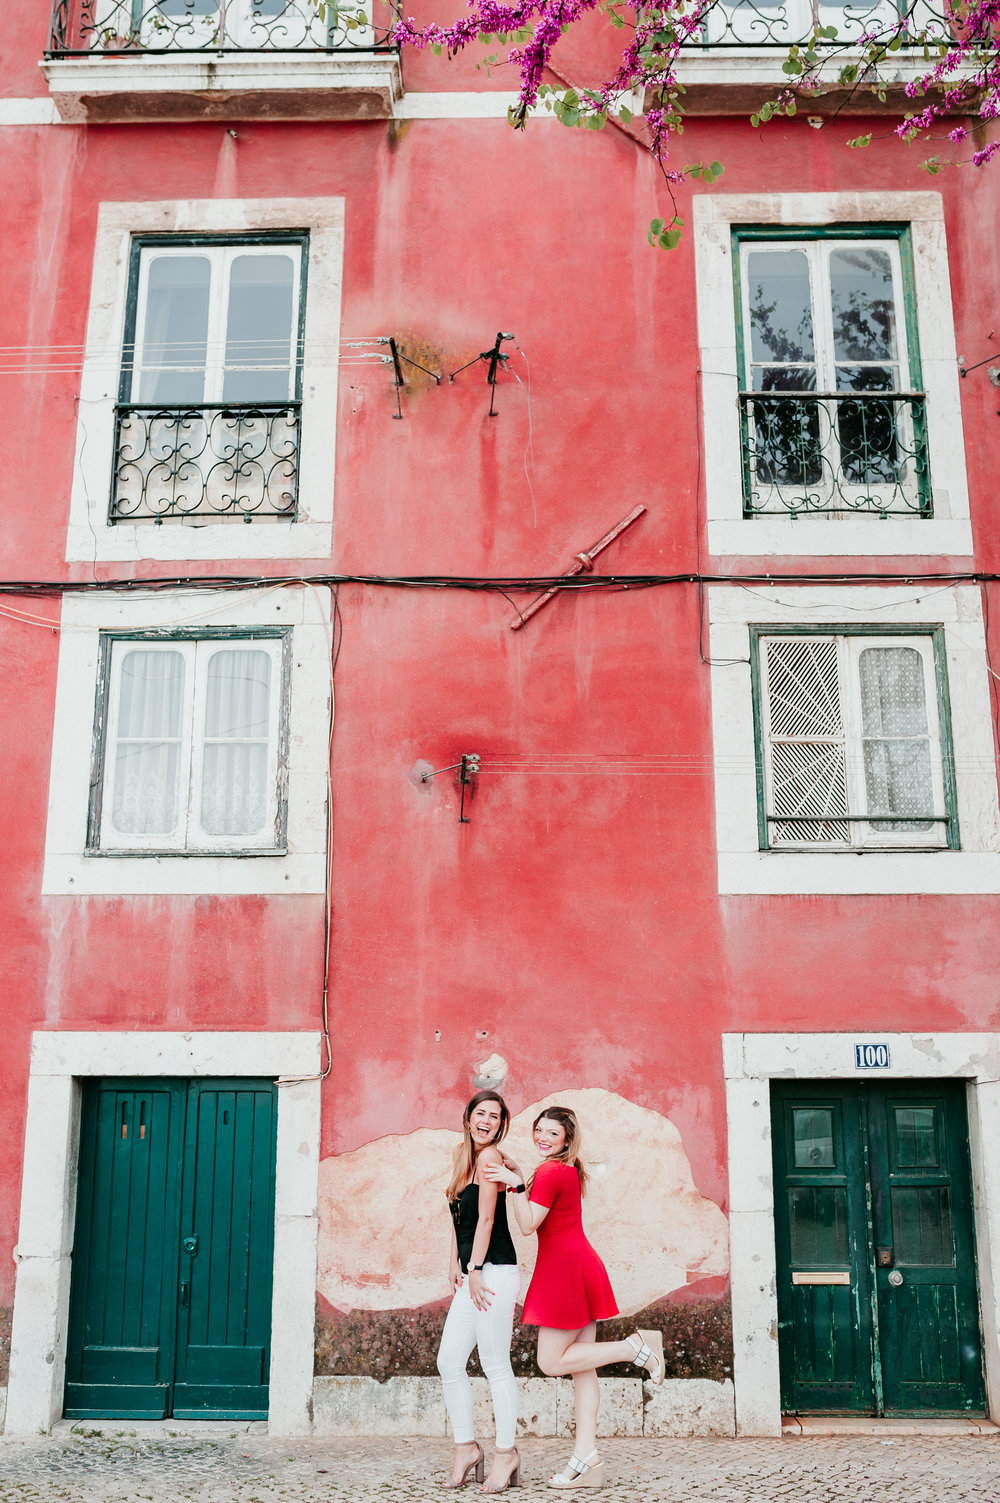 The Most Colourful Streets in the World